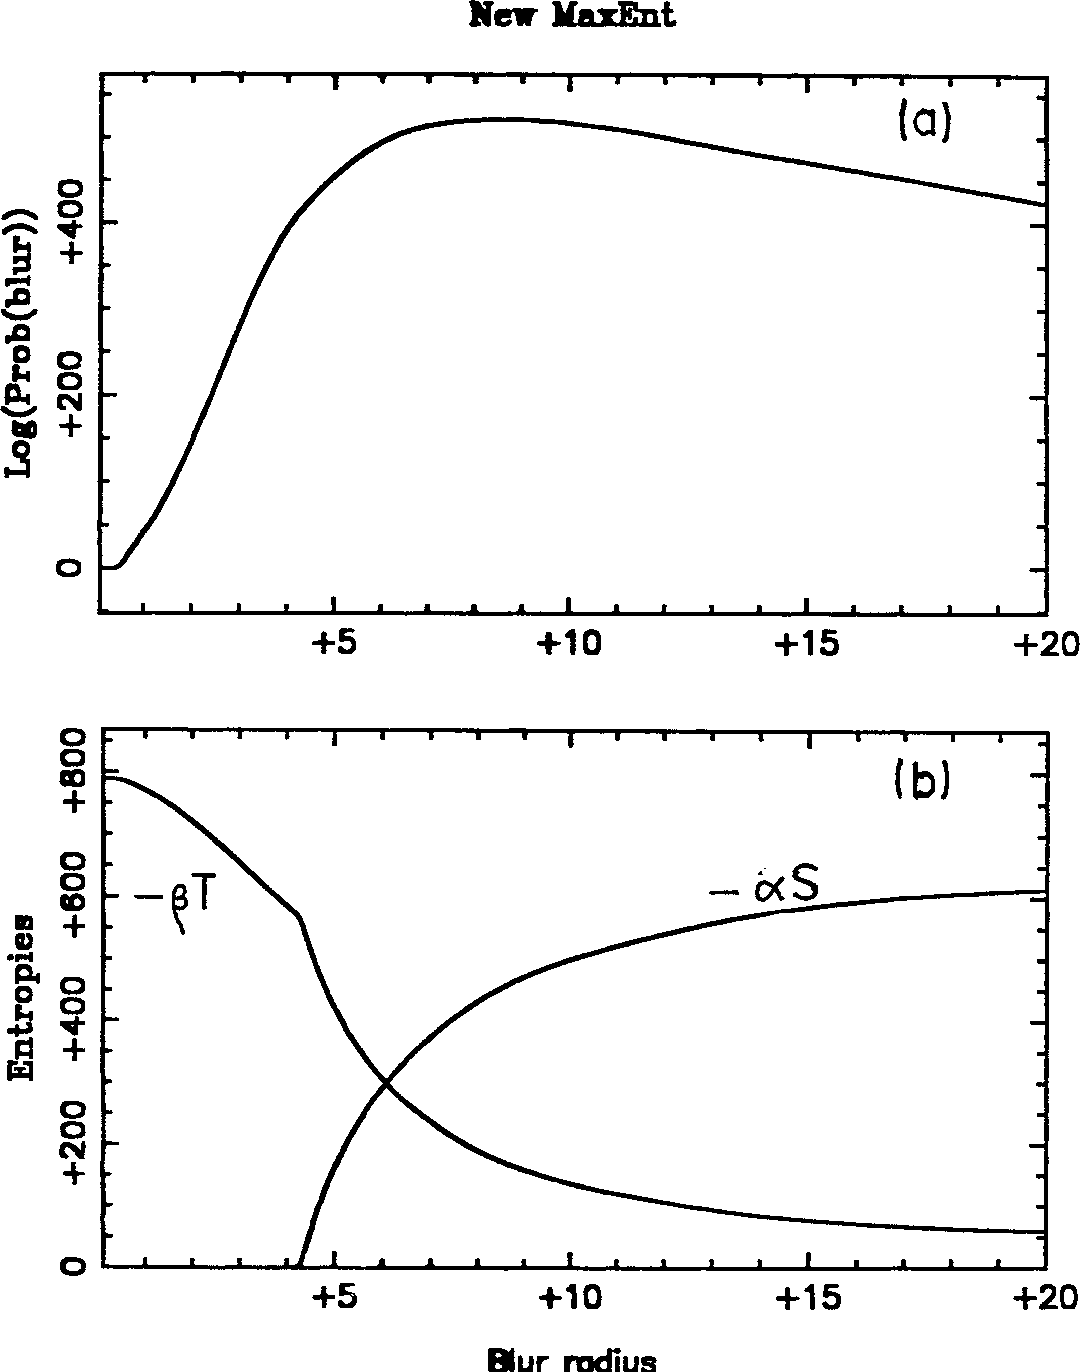 Figure 7. (a) Posterior distribution of the model-blur width for New MaxEnt Susie images, (b) Image-space entropy 5 and model-space entropy T. Note that 5 is zero for model-blurs narrower than 4.27 pixels.